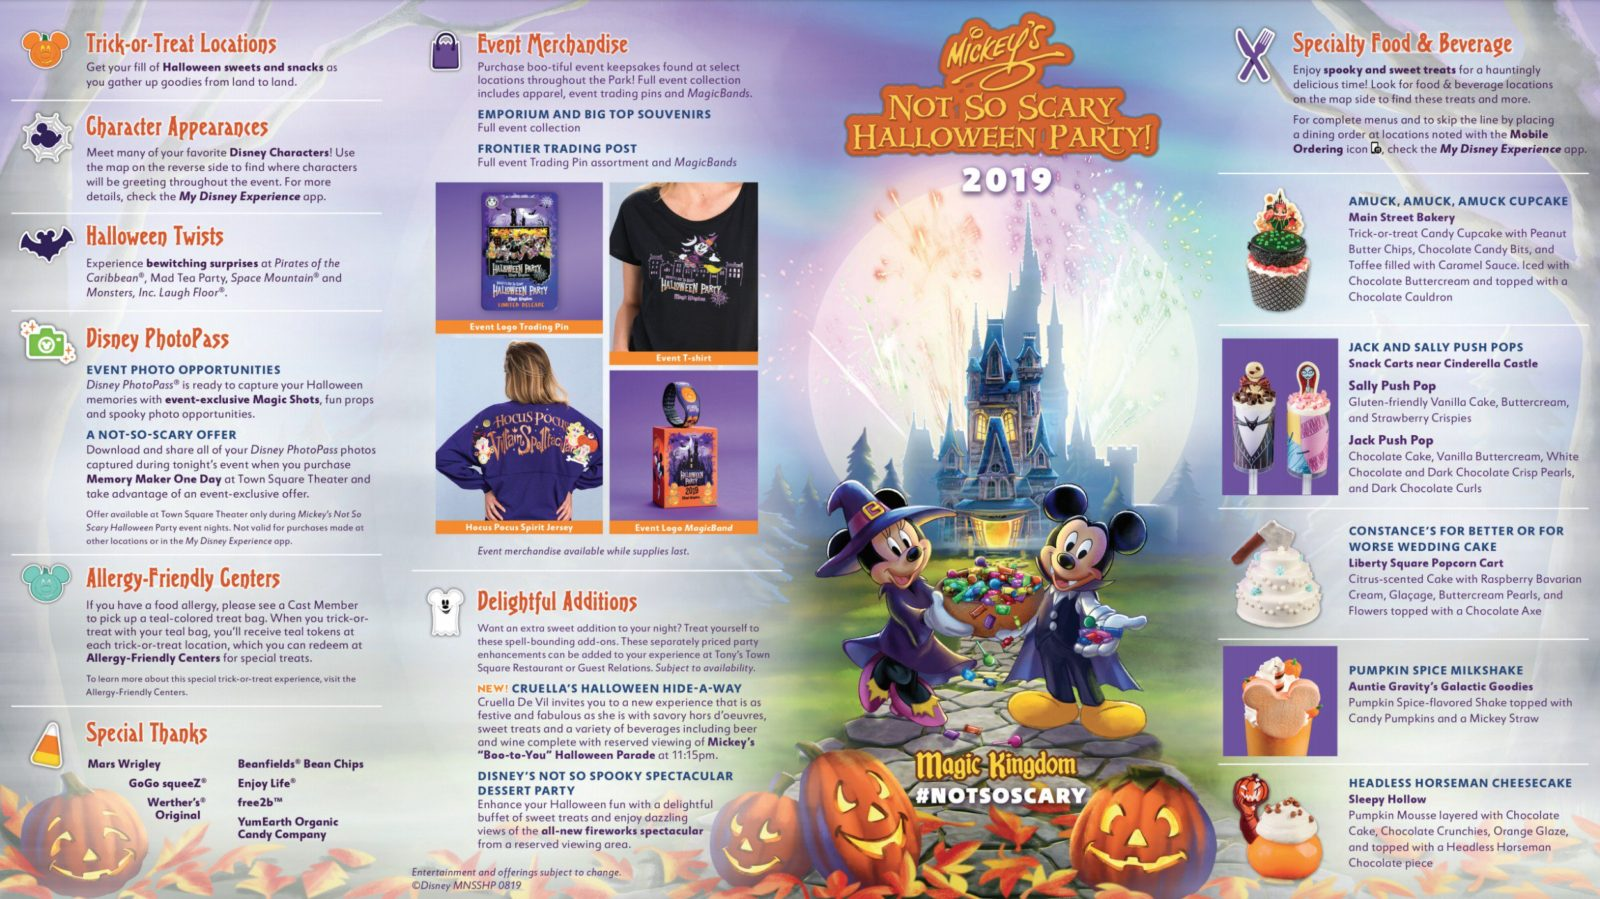 Mickey's Not So Scary Halloween Party Map 2019 Outside